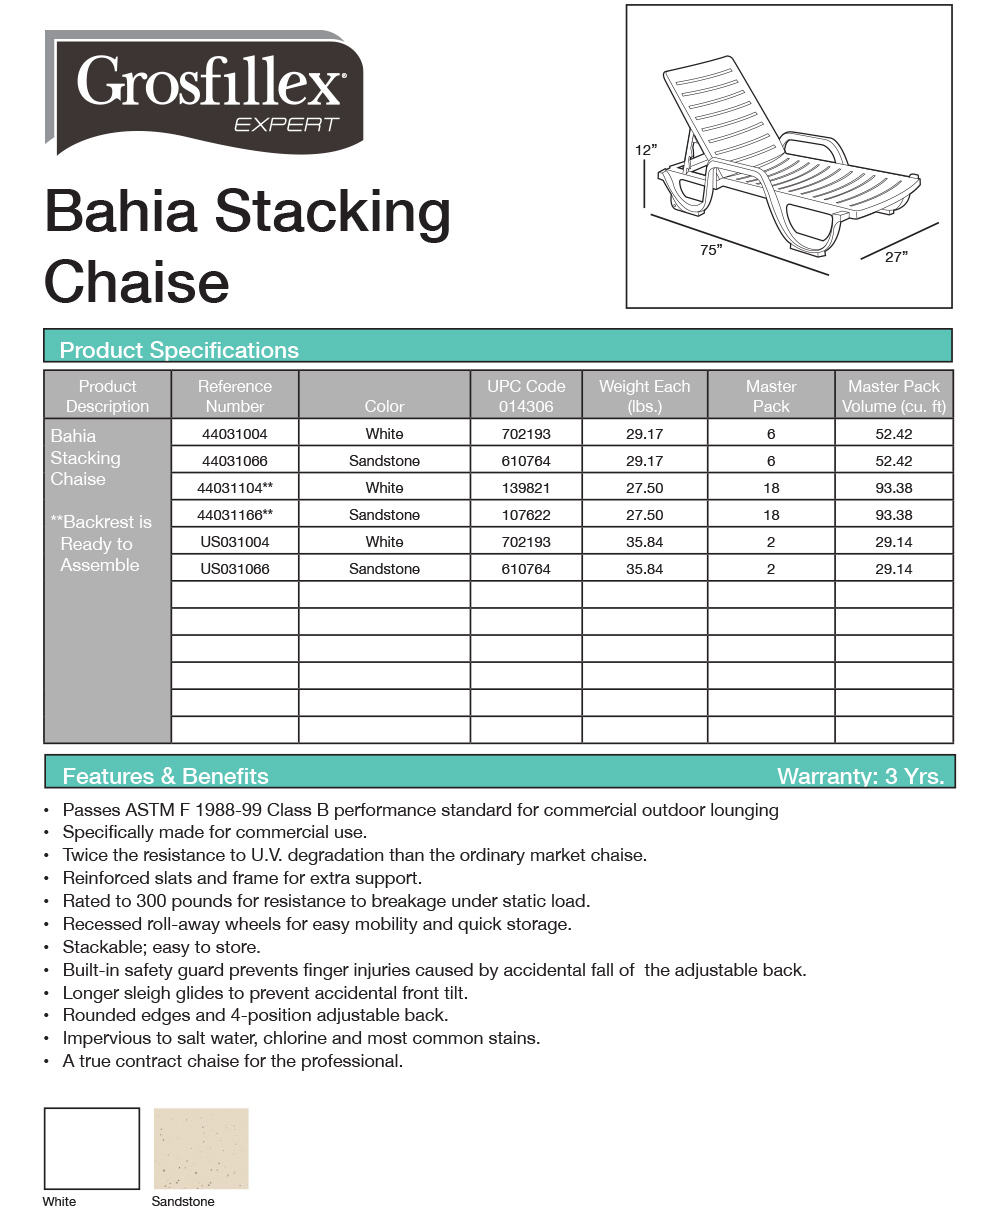 Grosfillex Bahia Stacking Chaise